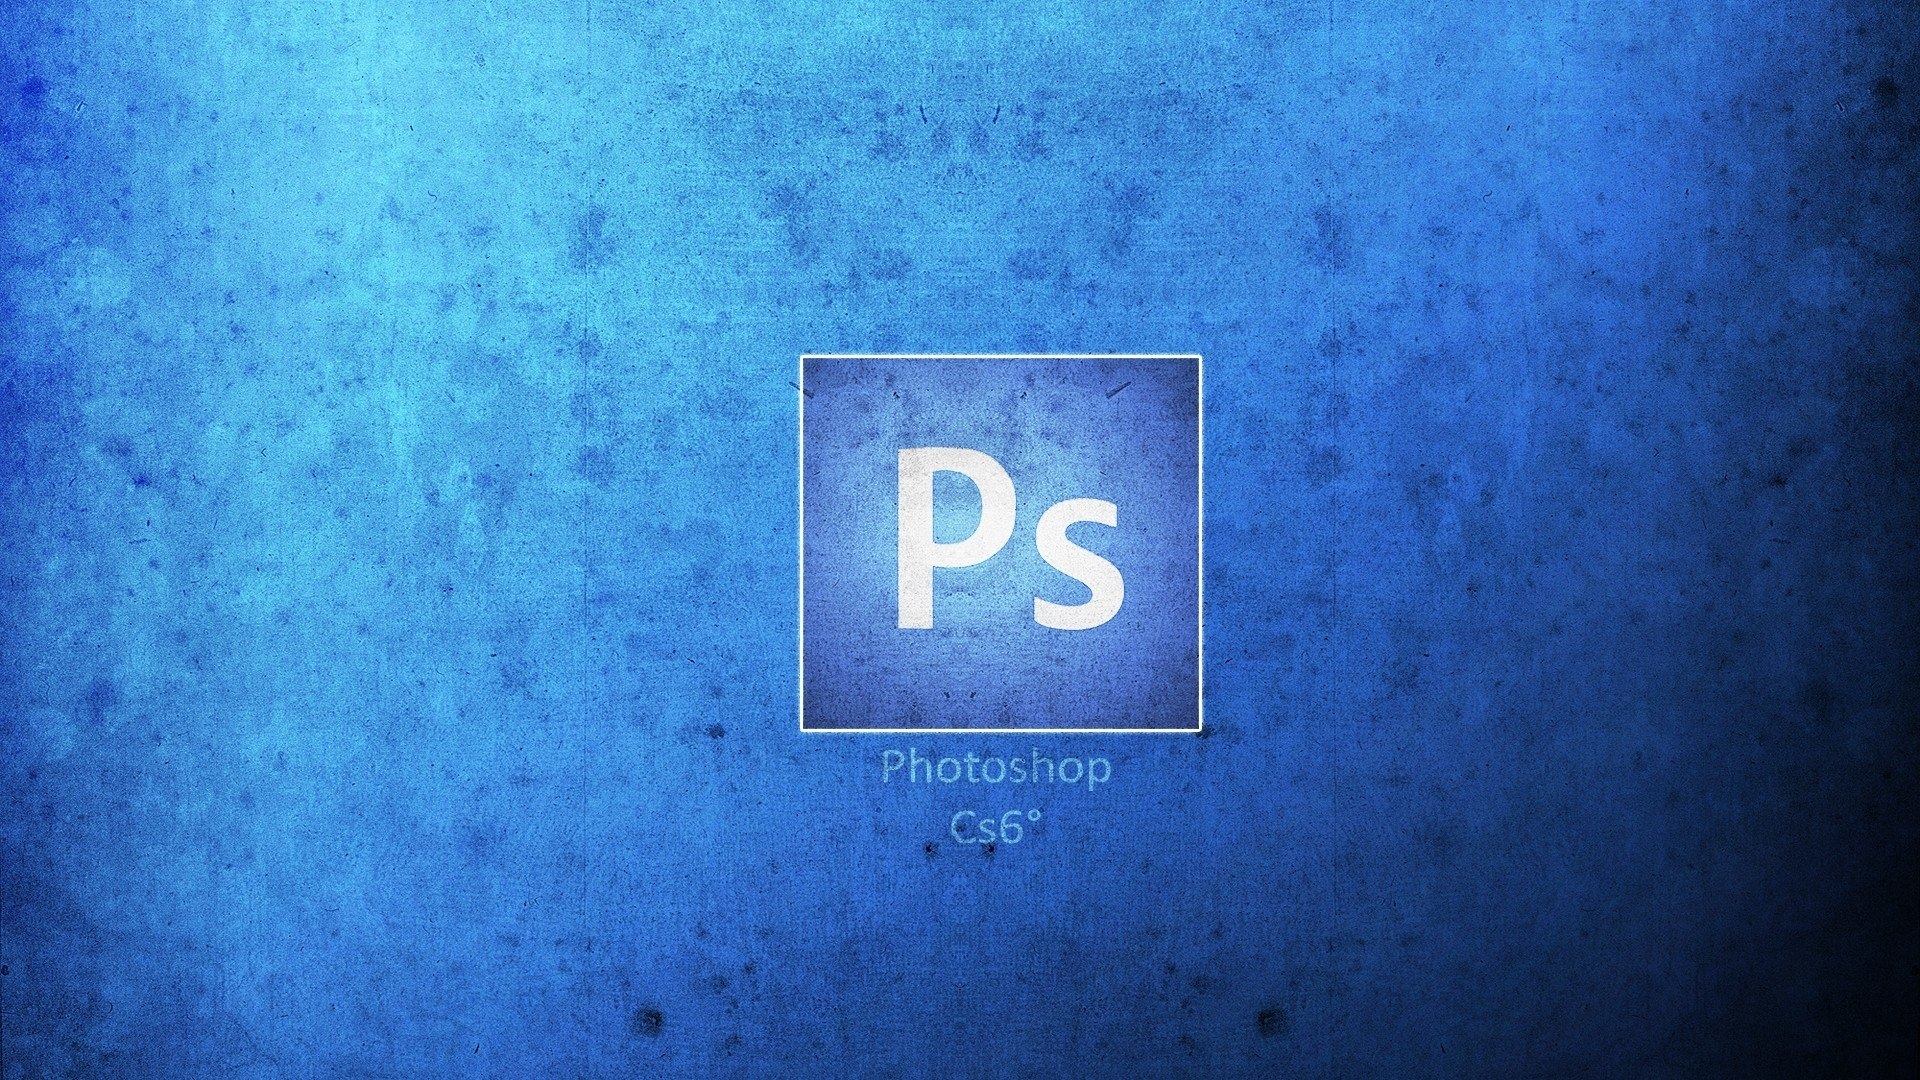 4 Adobe Photoshop HD Wallpapers